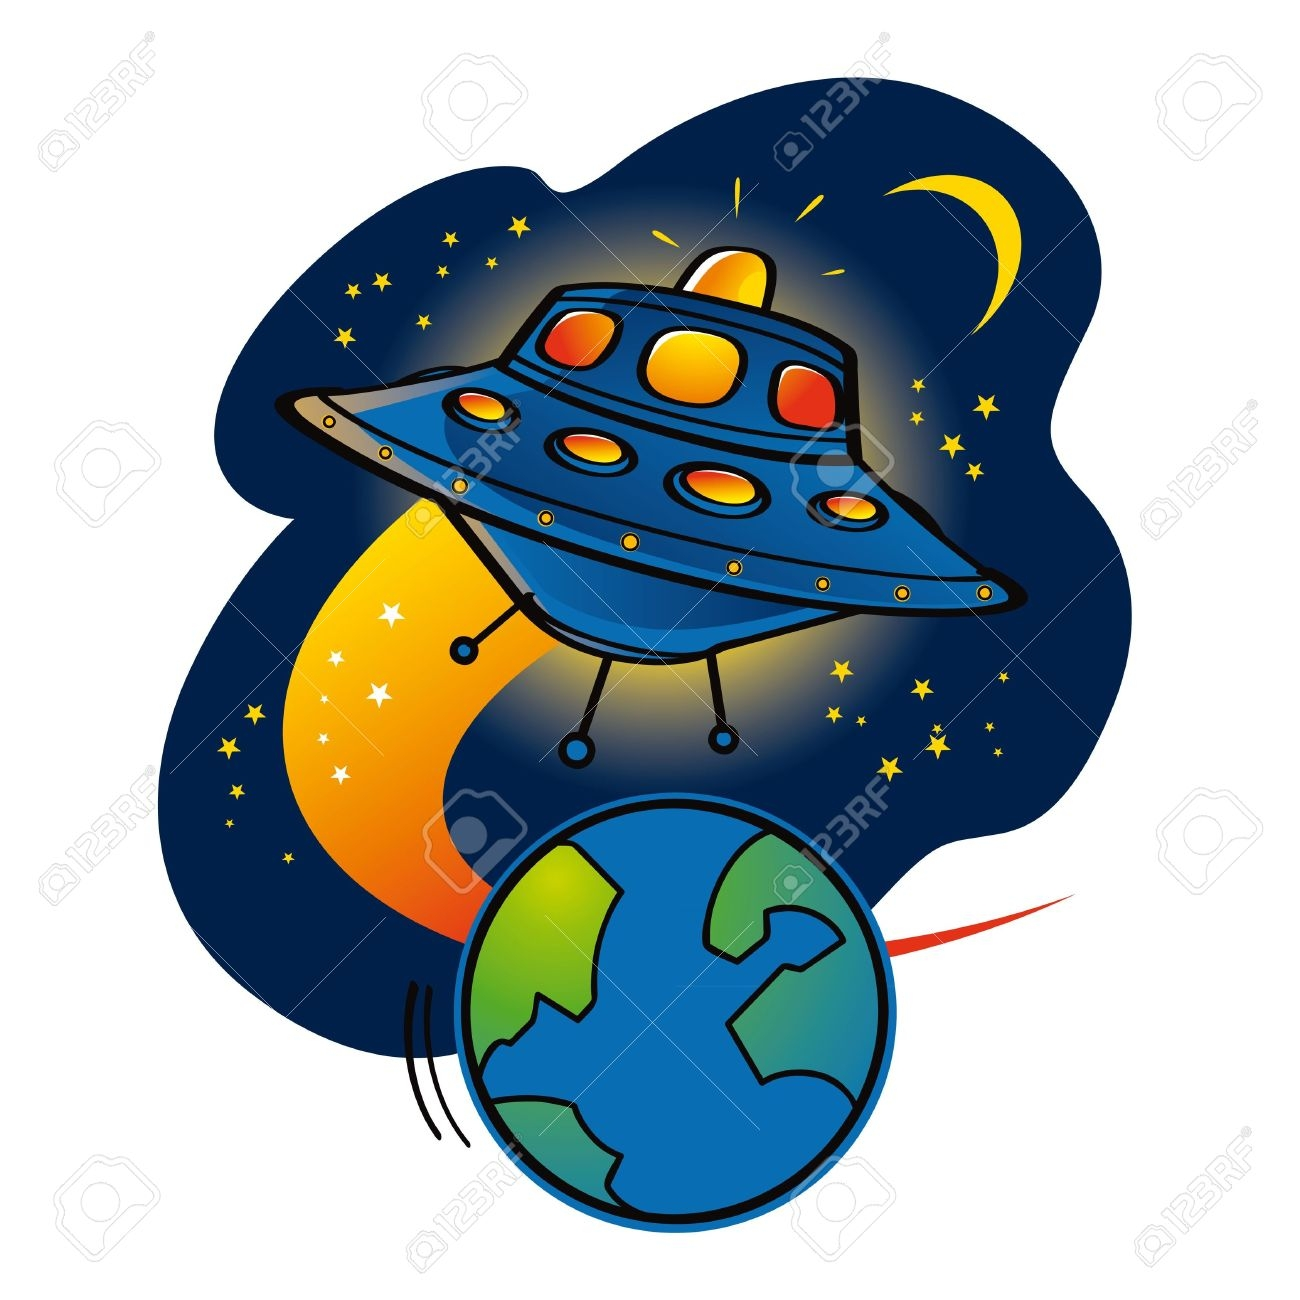 Earth from space clipart jpg download Earth From Space Clip Art – Clipart Free Download jpg download